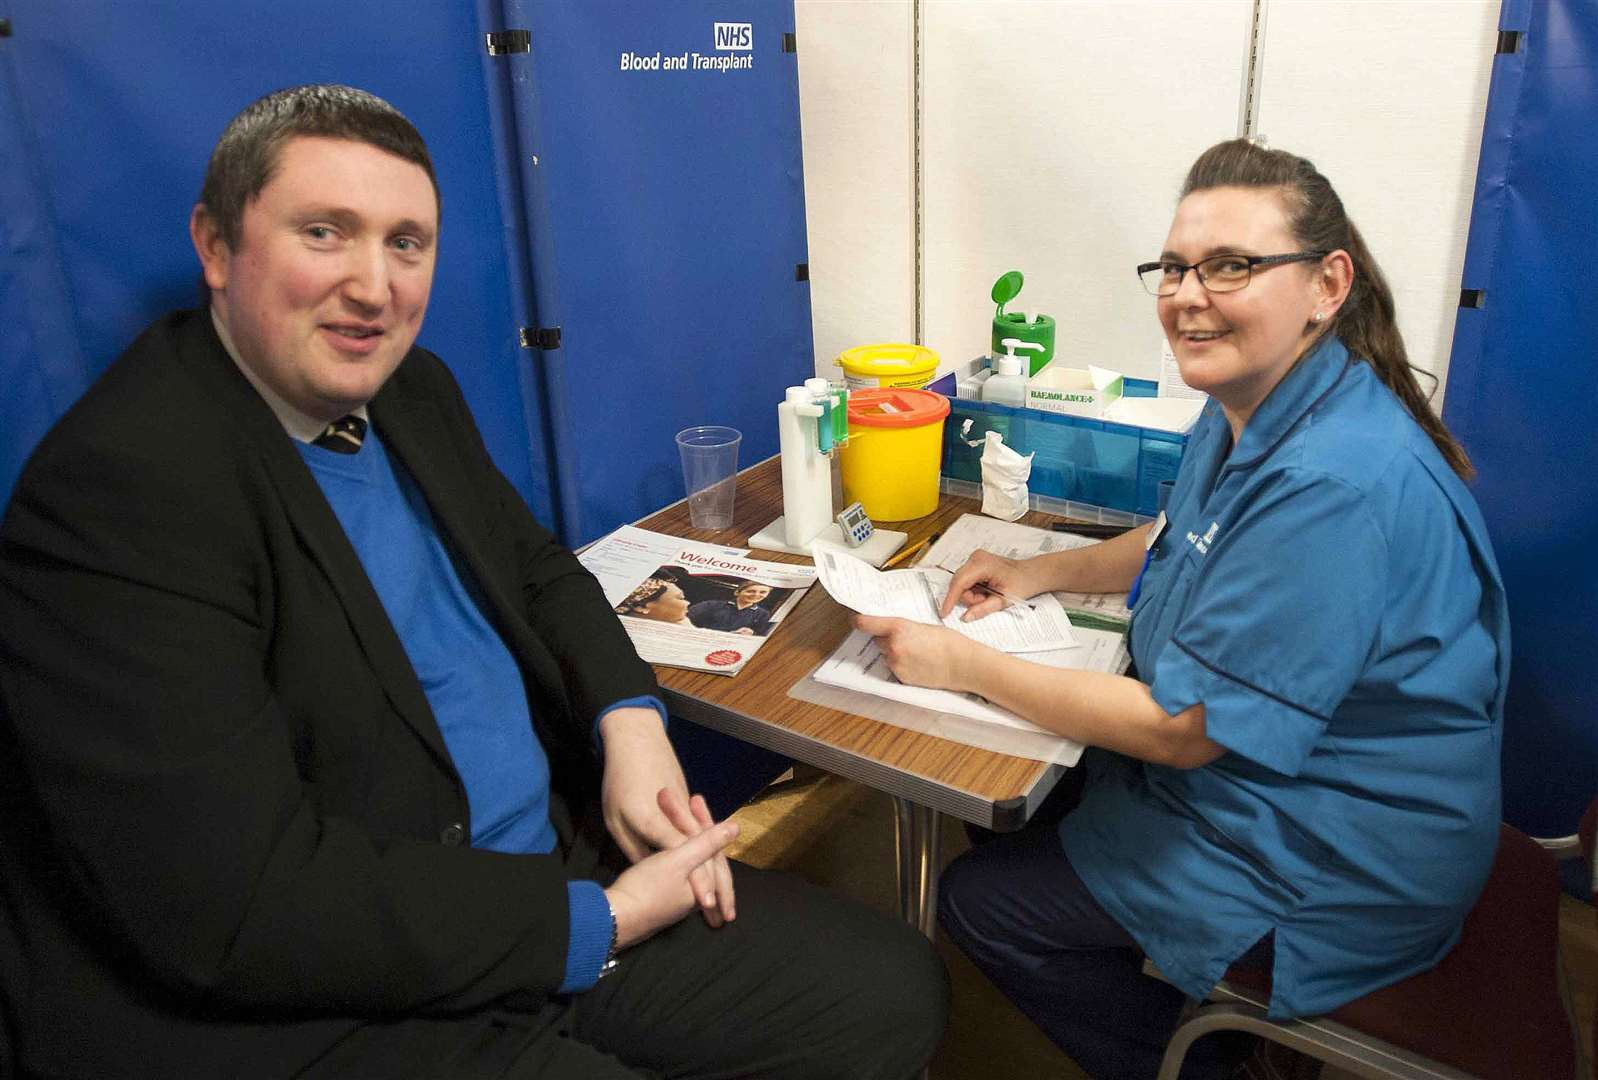 Lynn News News Editor Alister Webb set to become a New Blood Donor. Pictured Allister with Nurse Sarah Sarah Parfitt.at The Blood Donor session King's Centre King's Lynn. (7421608)